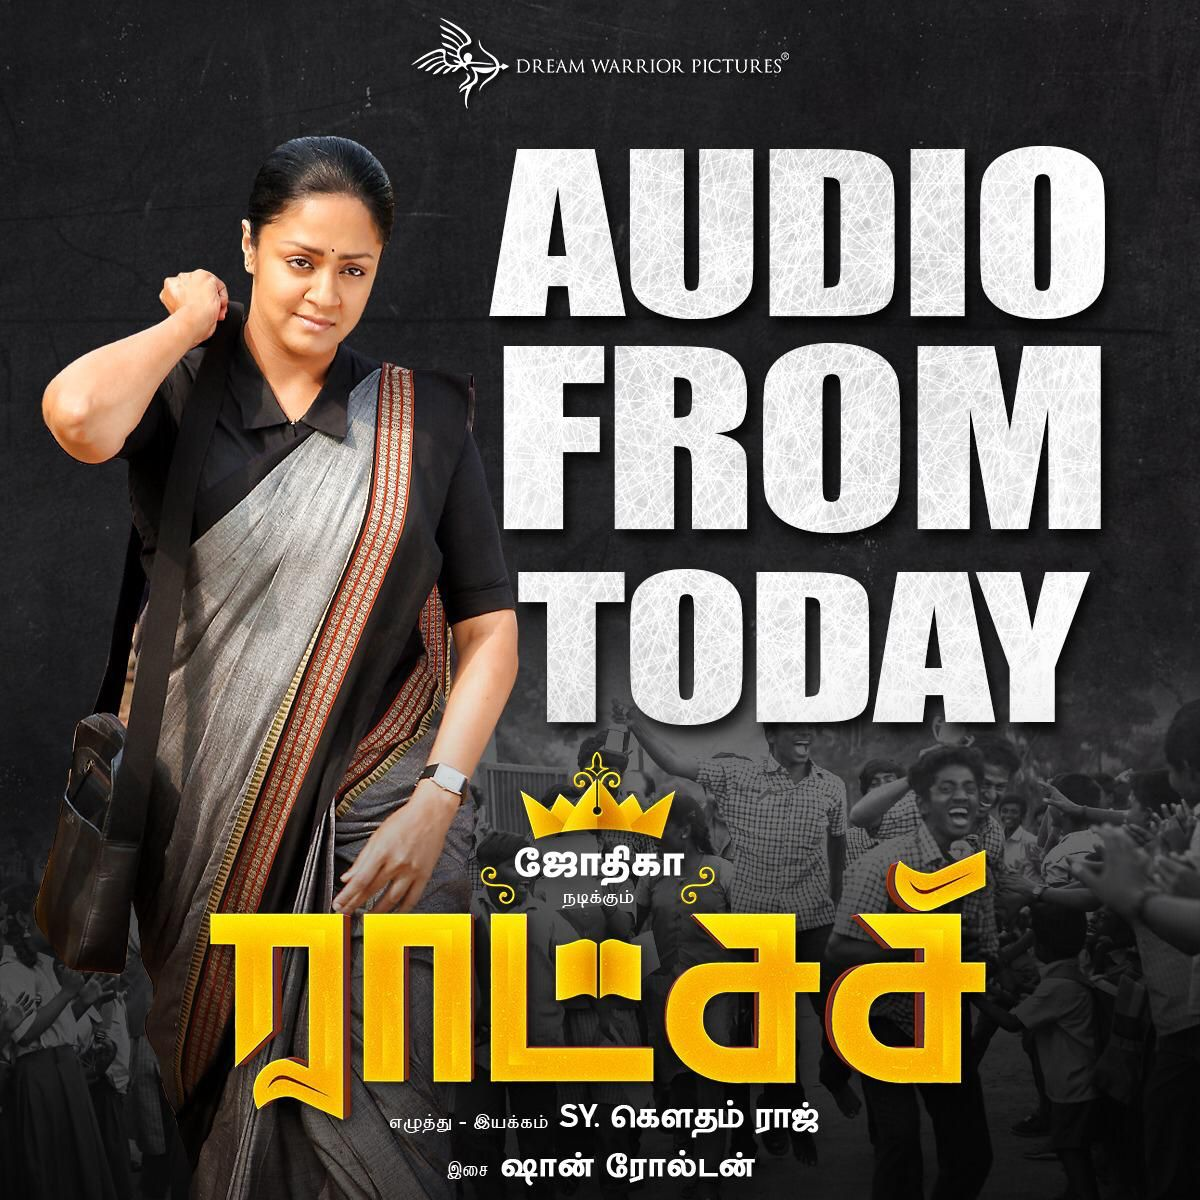 #Raatchasi #ராட்சசி audio will be out today. Music by @RSeanRoldan   #Jyotika #SyGowthamraj @gokulbenoy @philoedit @prabhu_sr @dreamwarriorpic @divomovies